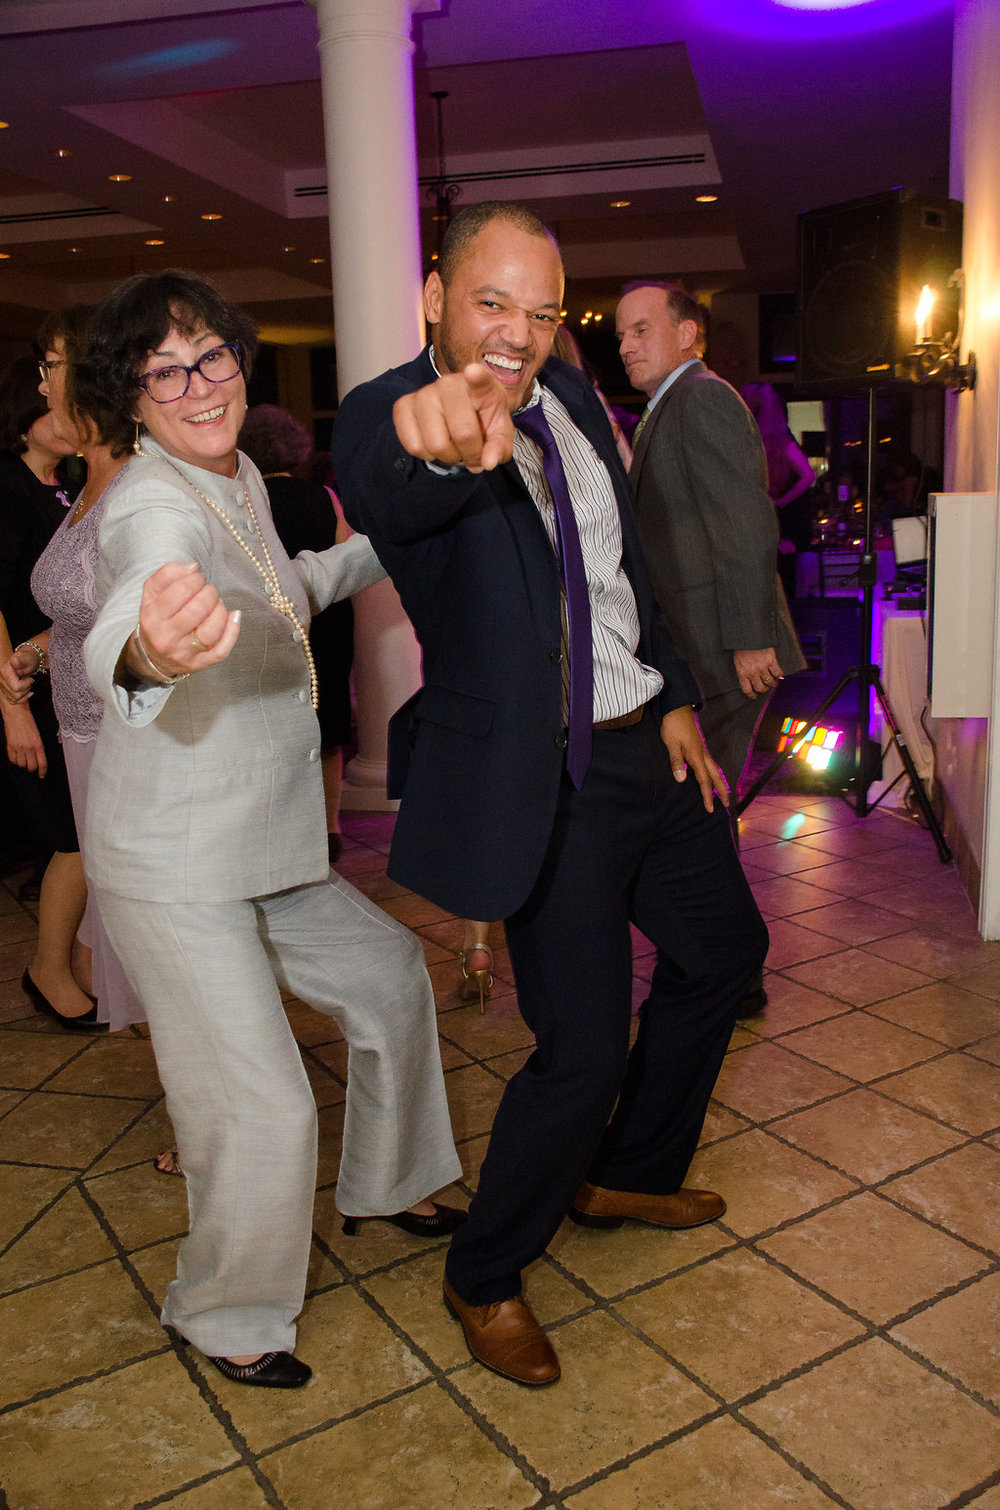 Whitehall Estate and Winery Wedding reception guest dancing Photo